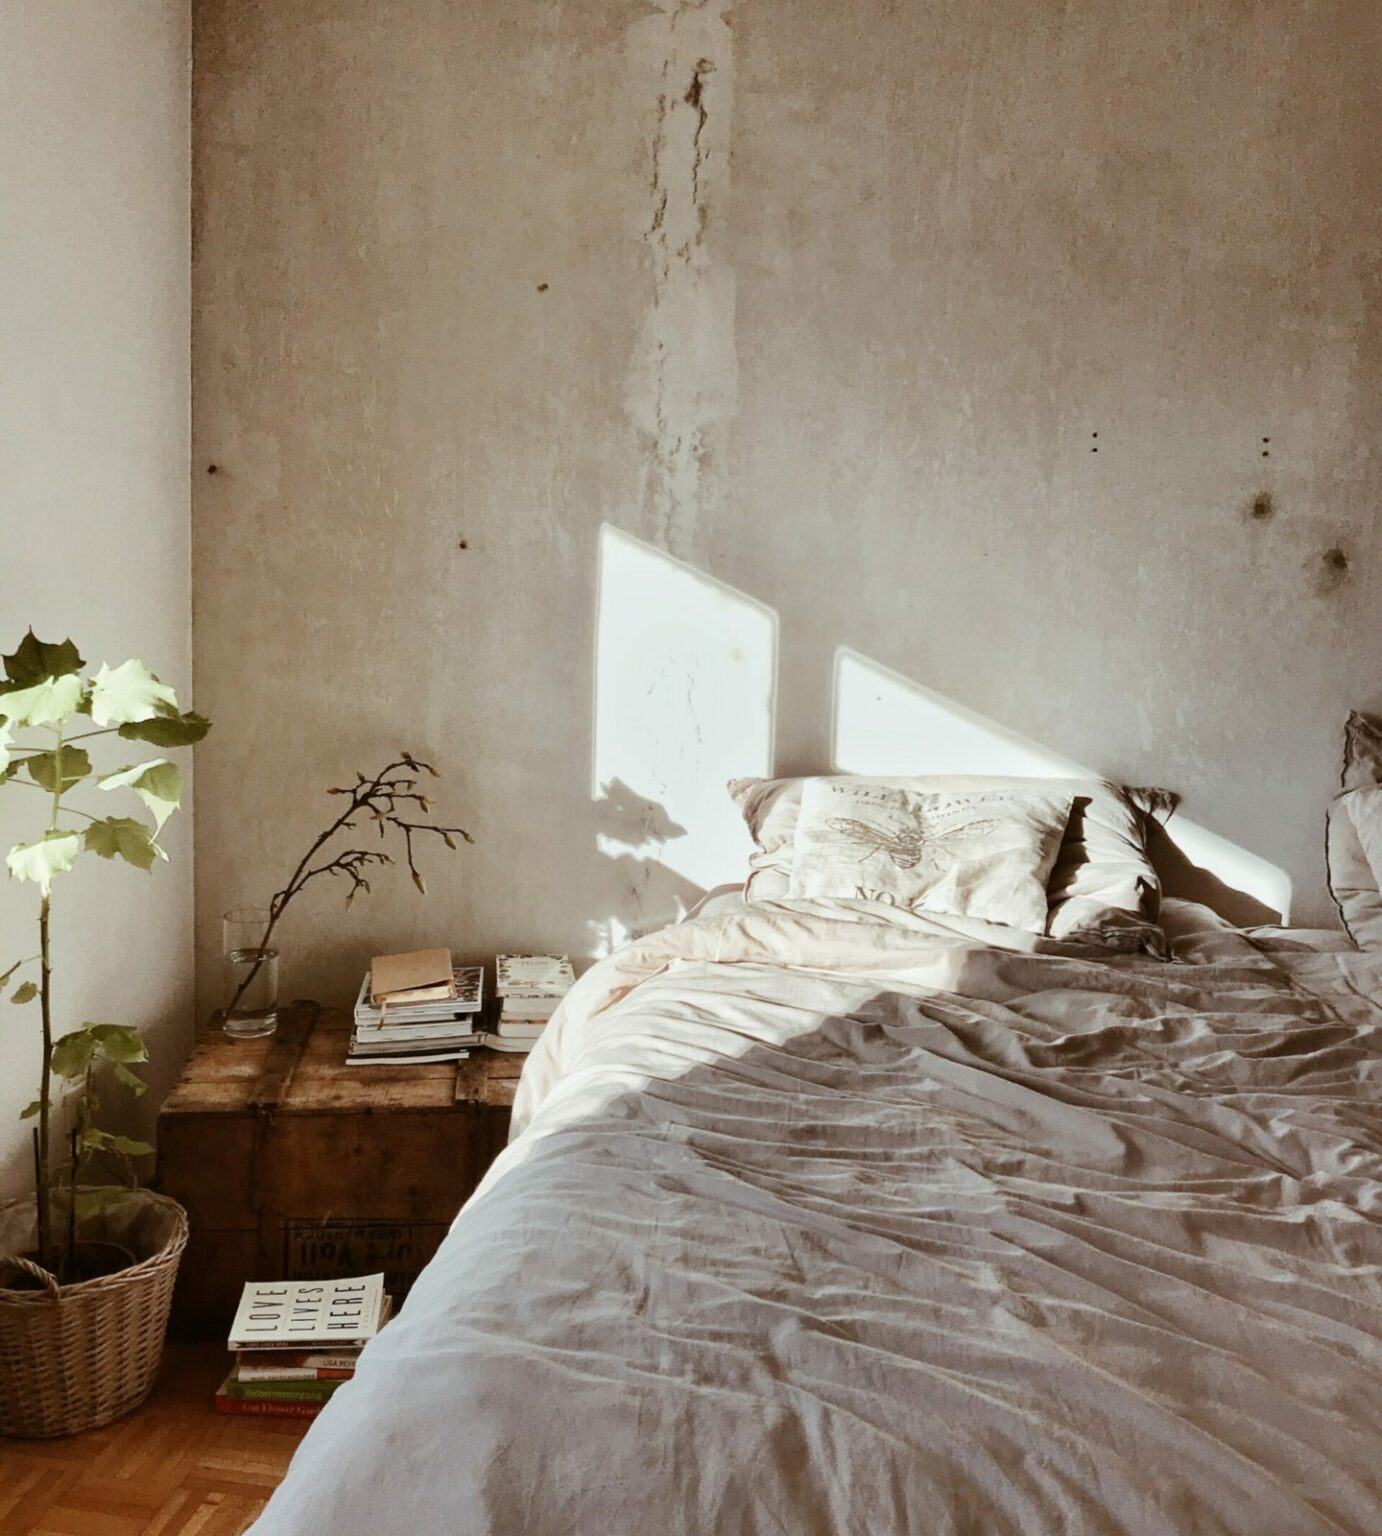 Bed in the sunlight with plant